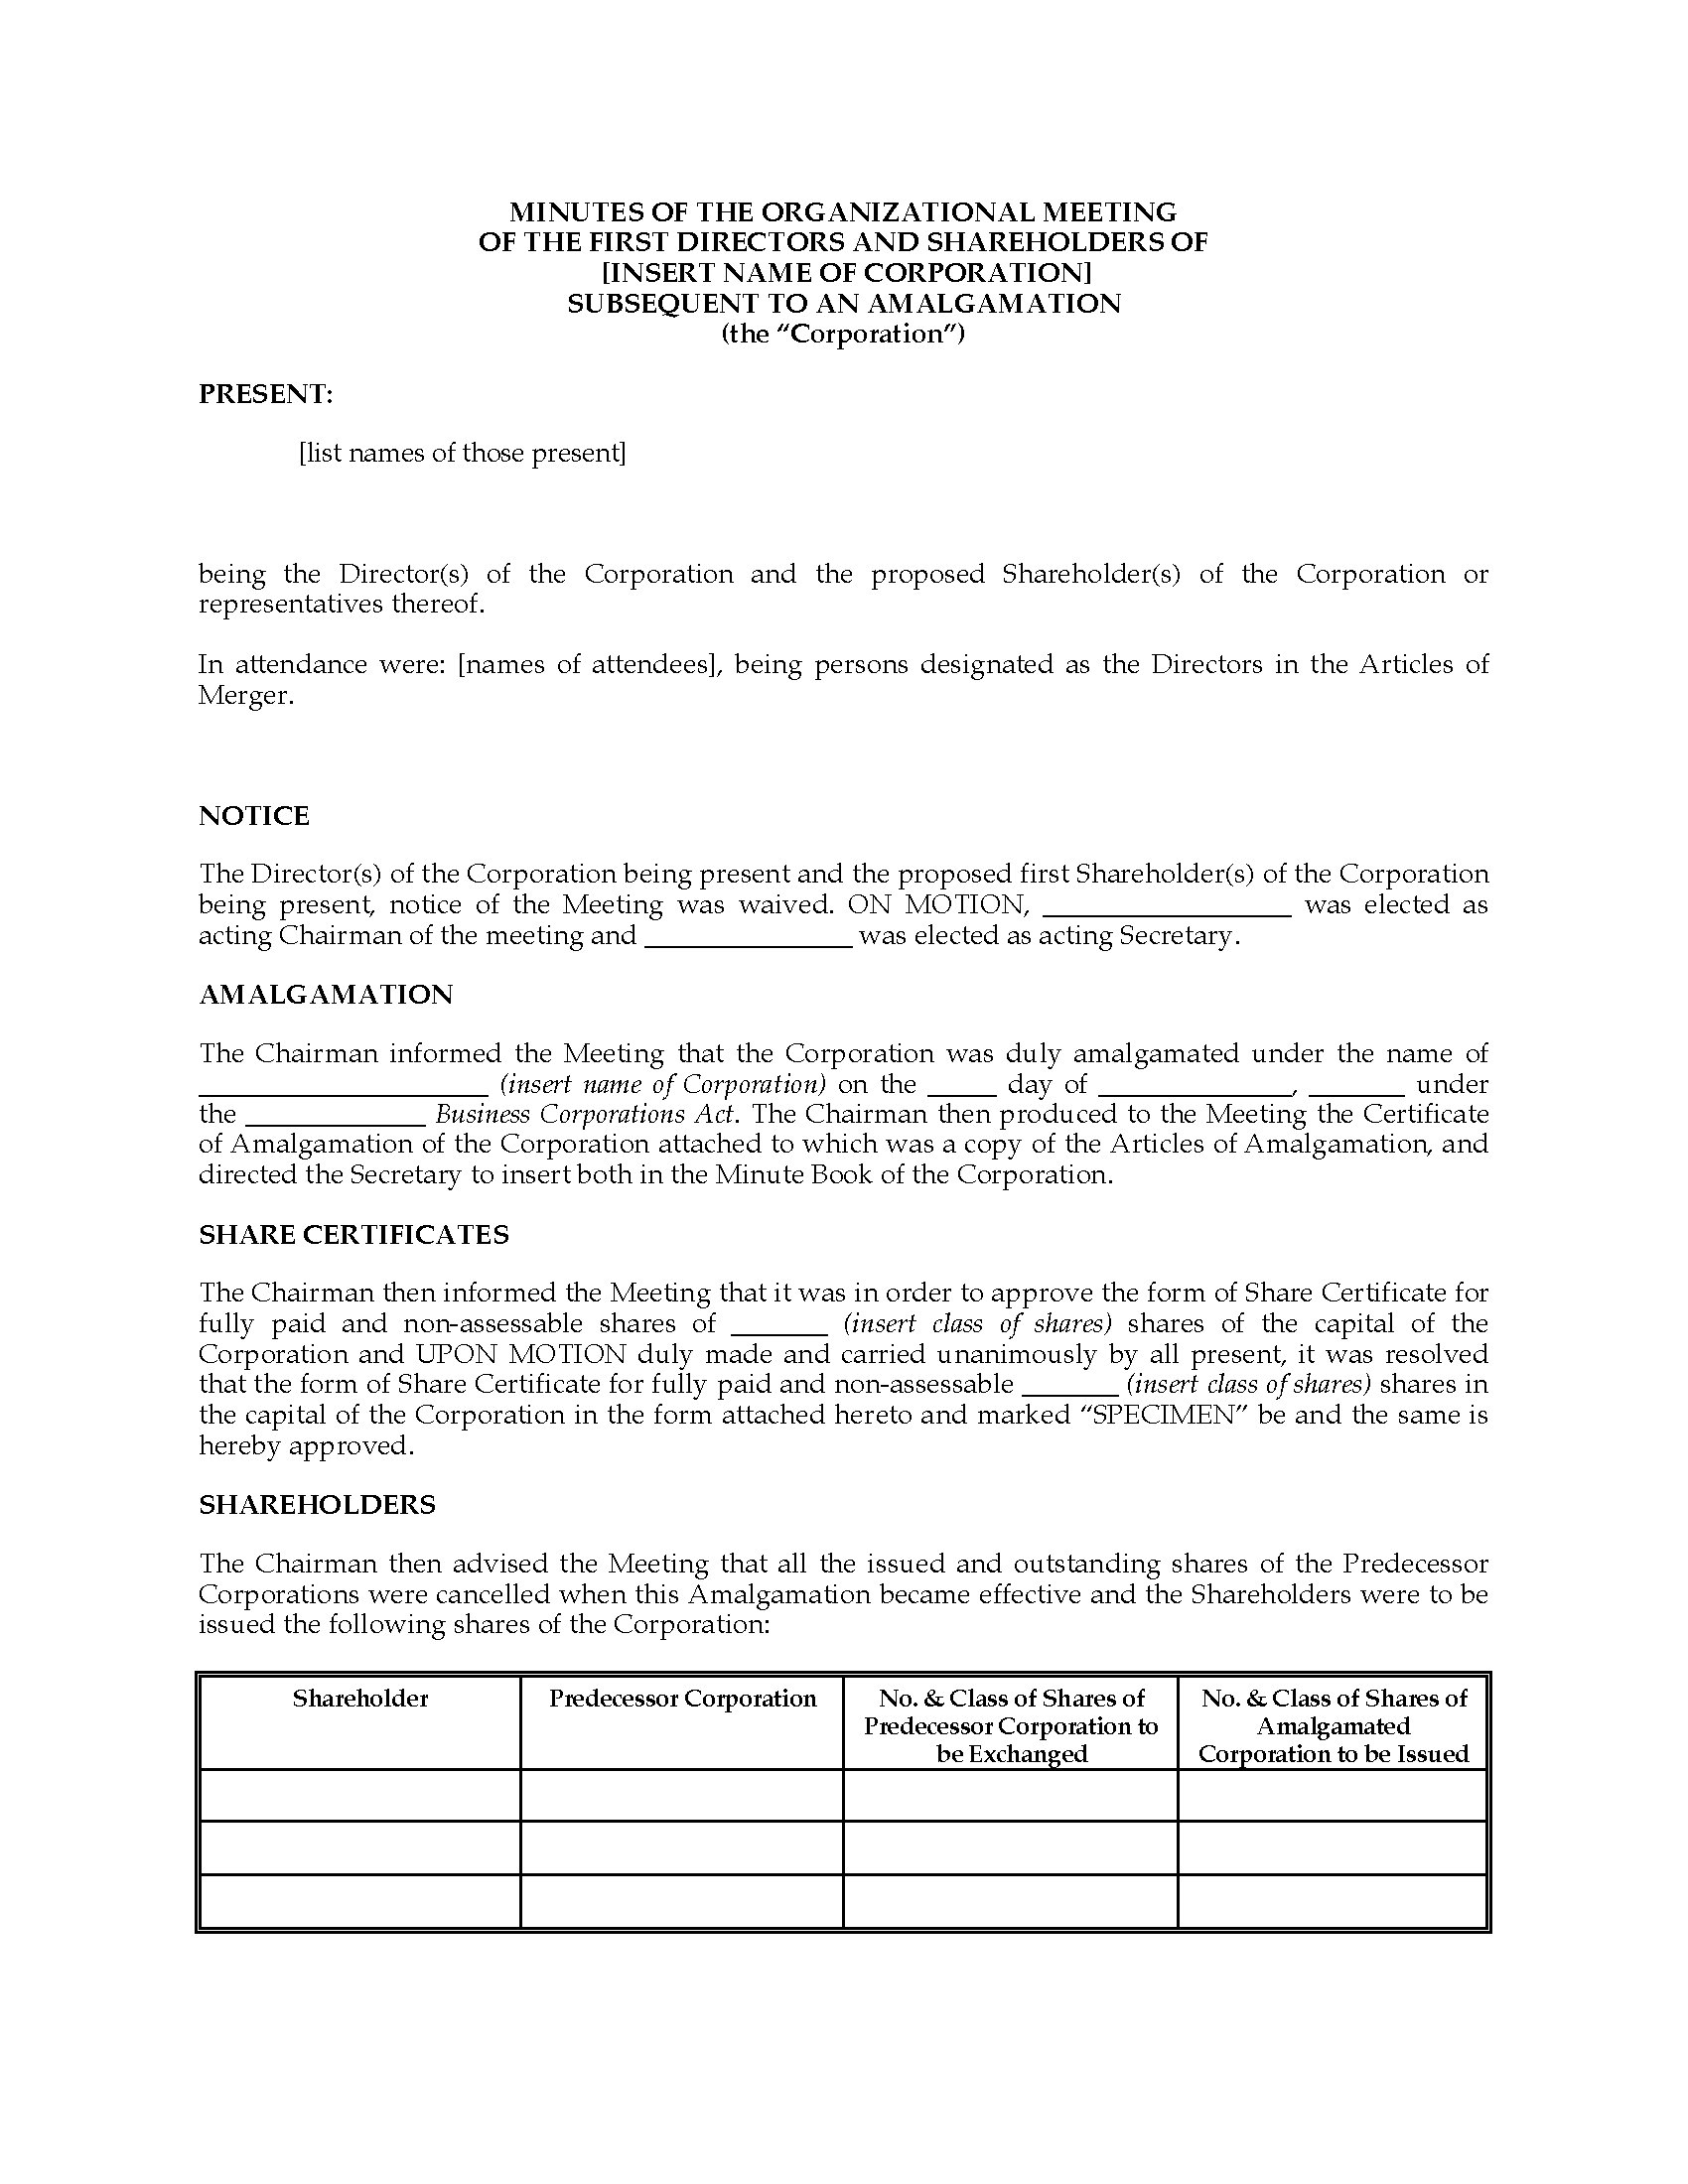 minutes of shareholders meeting template - canada minutes of organizational meeting of amalgamated